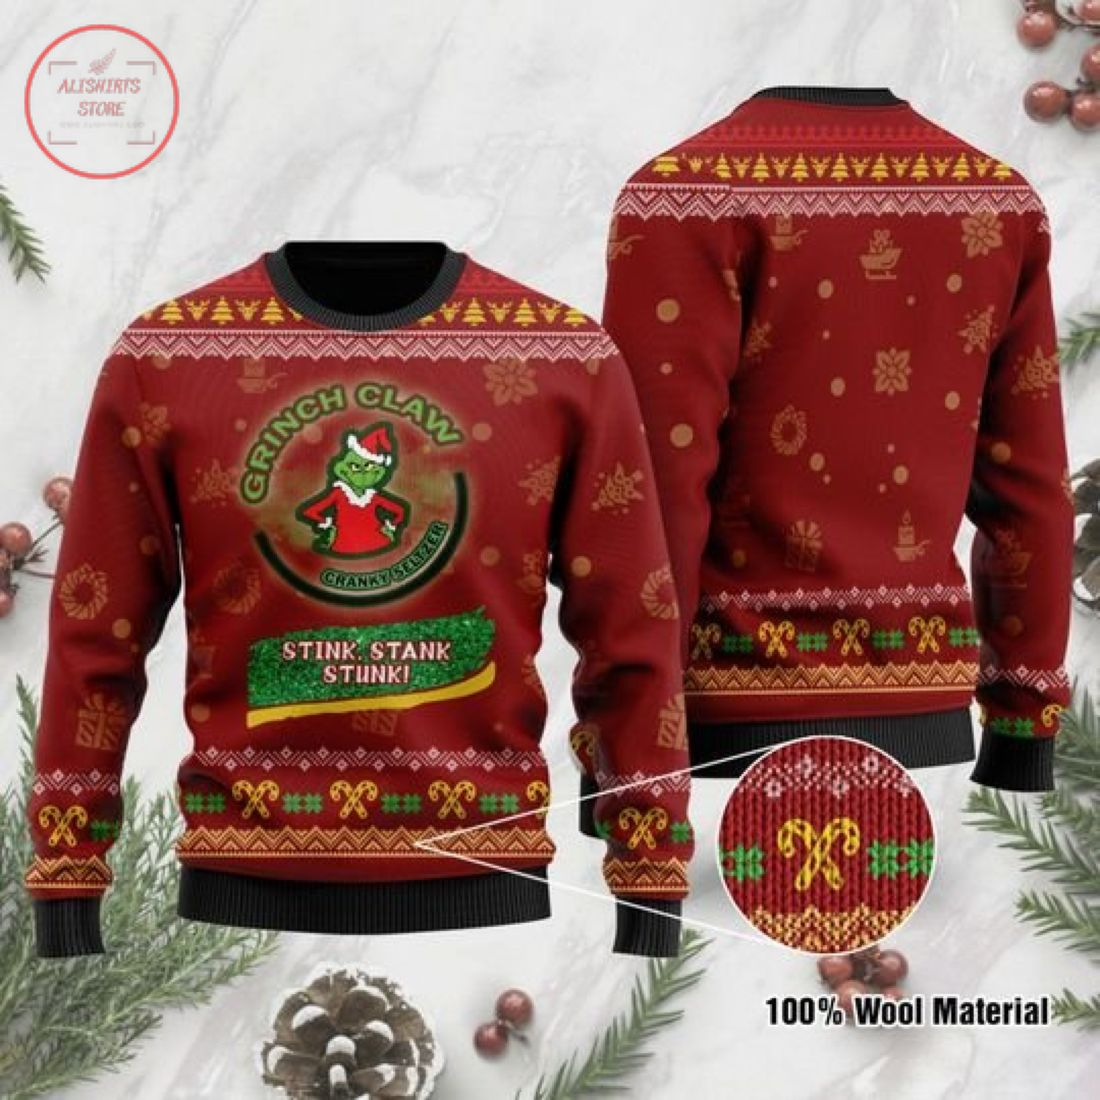 Grinch Claw Stink Stank Stunk Ugly Christmas Sweater